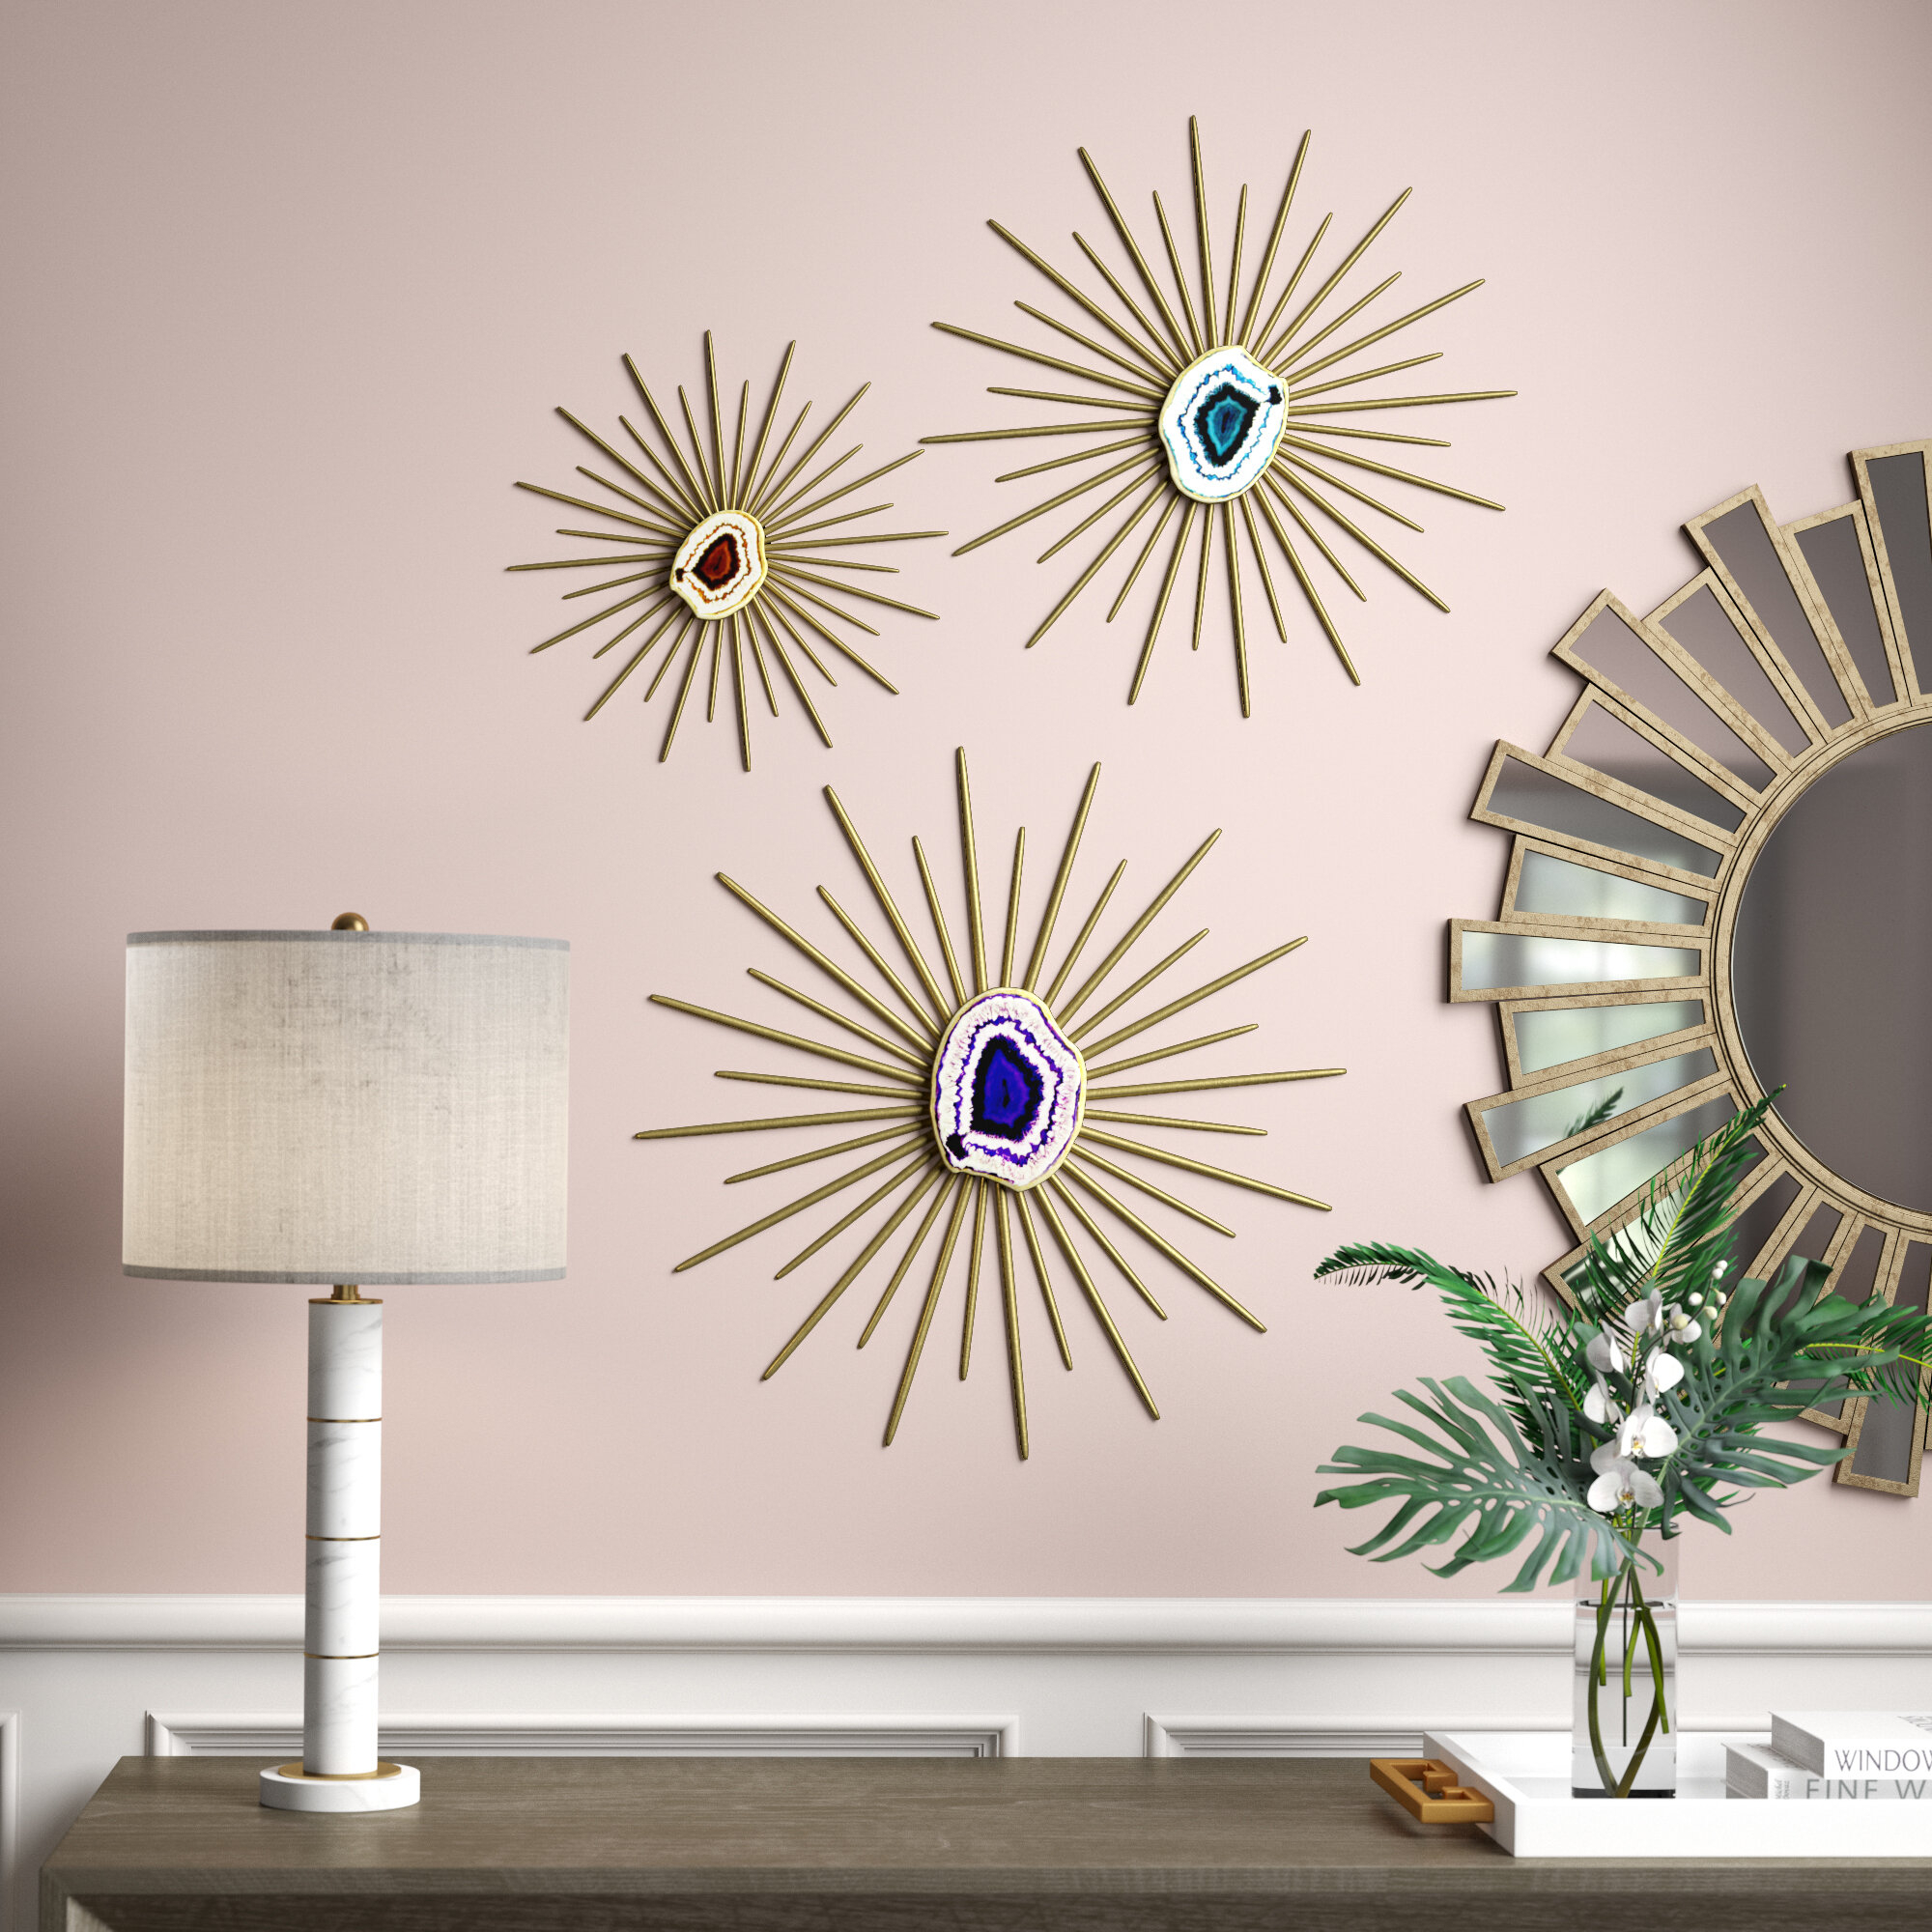 3 Piece Contemporary Metal Spiked Wall Décor Set Inside 3 Piece Acrylic Burst Wall Decor Sets (set Of 3) (View 13 of 30)